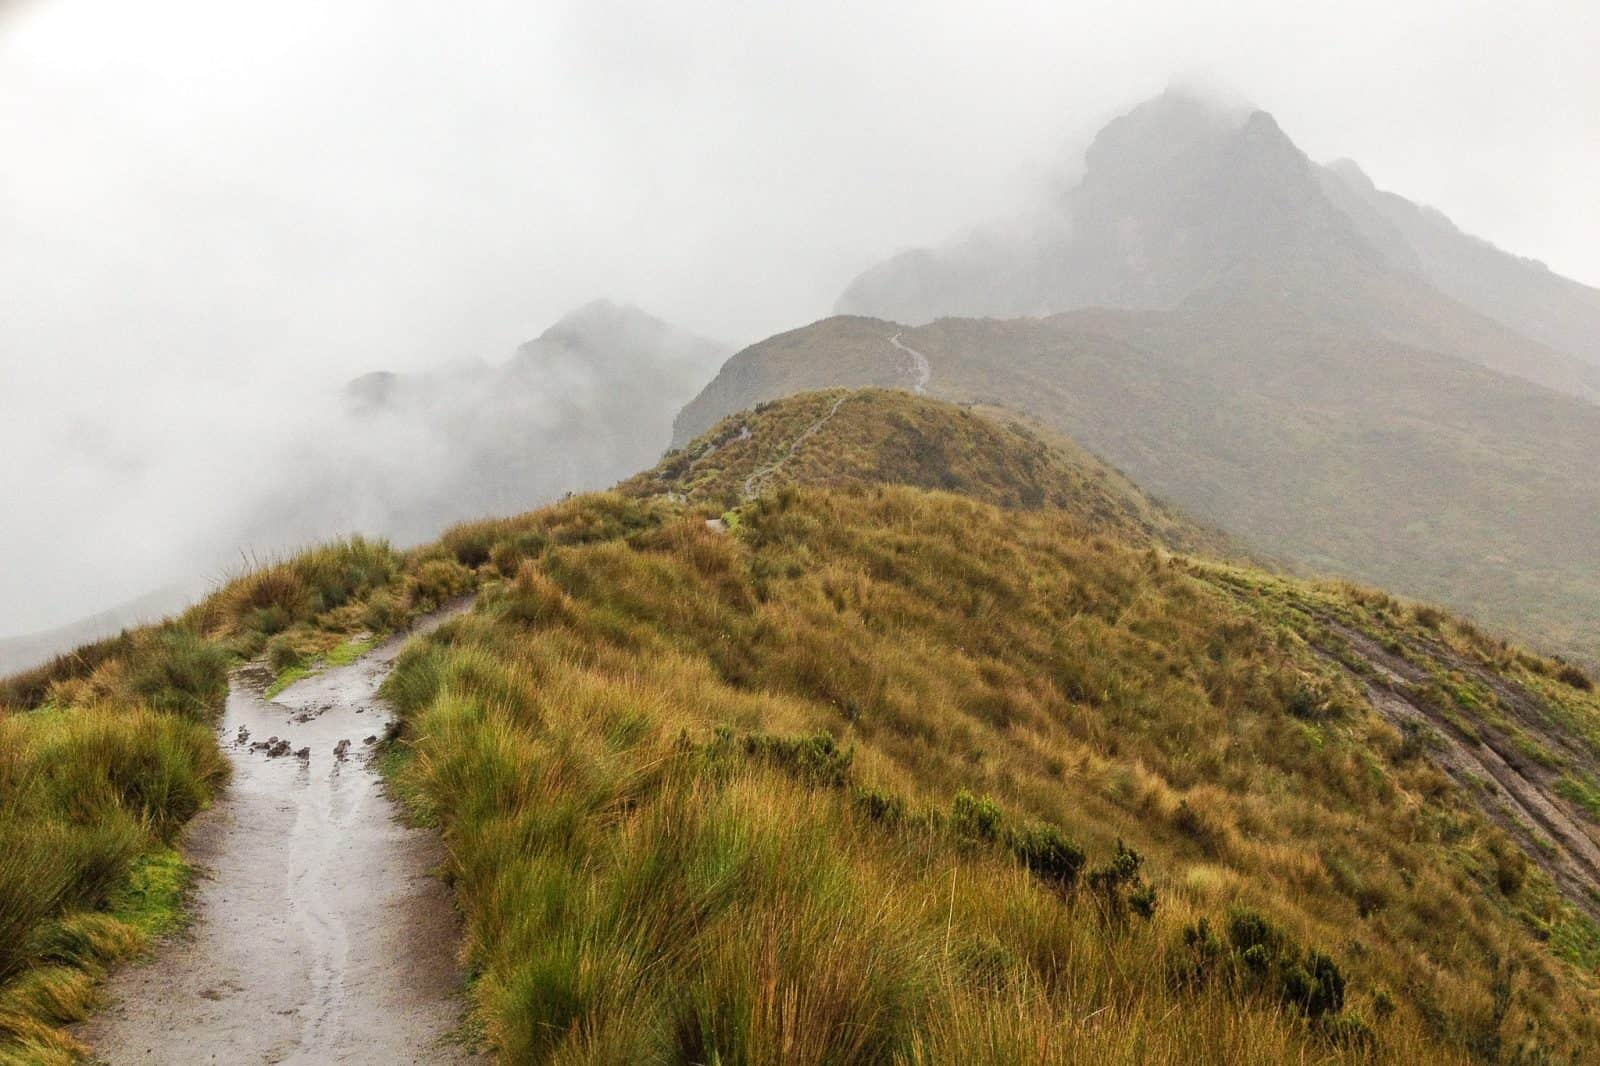 https://i1.wp.com/www.travelfreak.net/wp-content/uploads/2015/04/rainstorm-on-pichincha.jpg